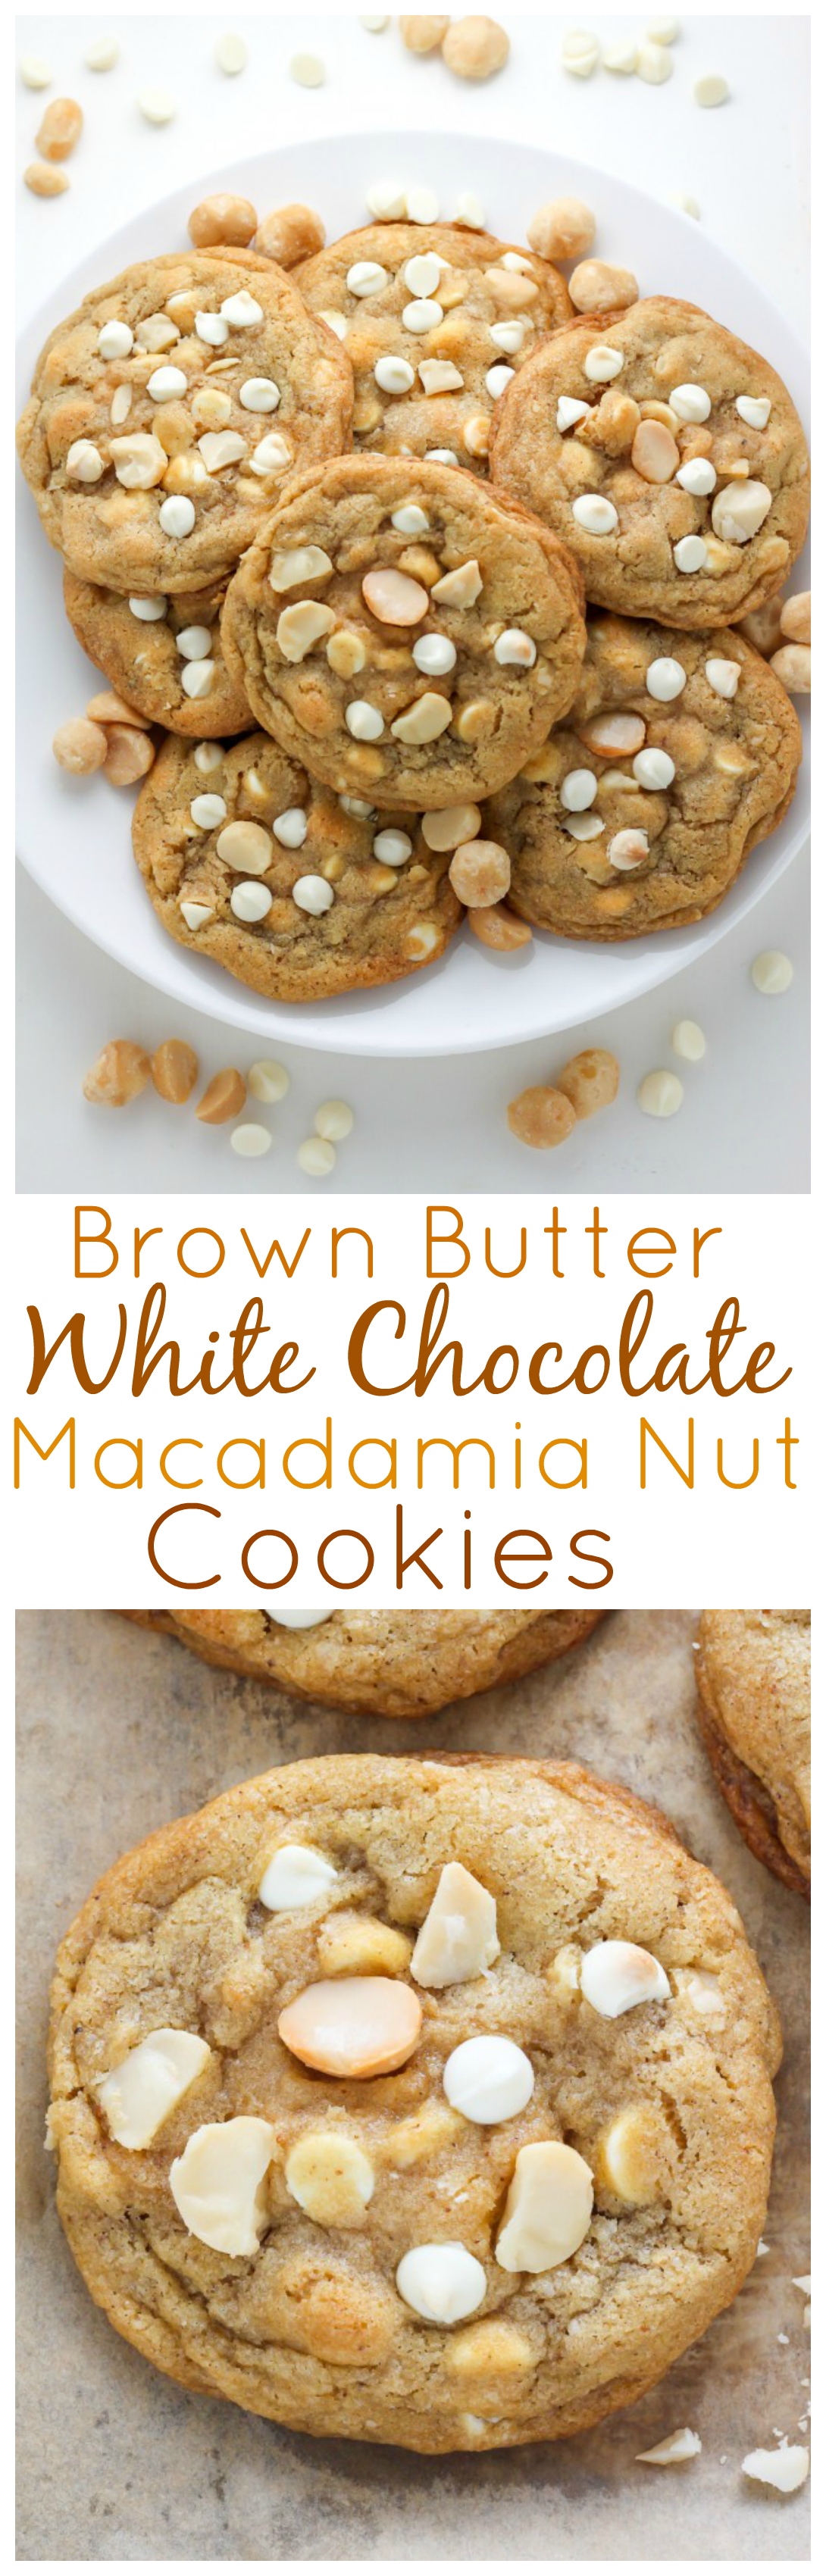 Brown Butter White Chocolate Macadamia Nut Cookies - Baker by Nature